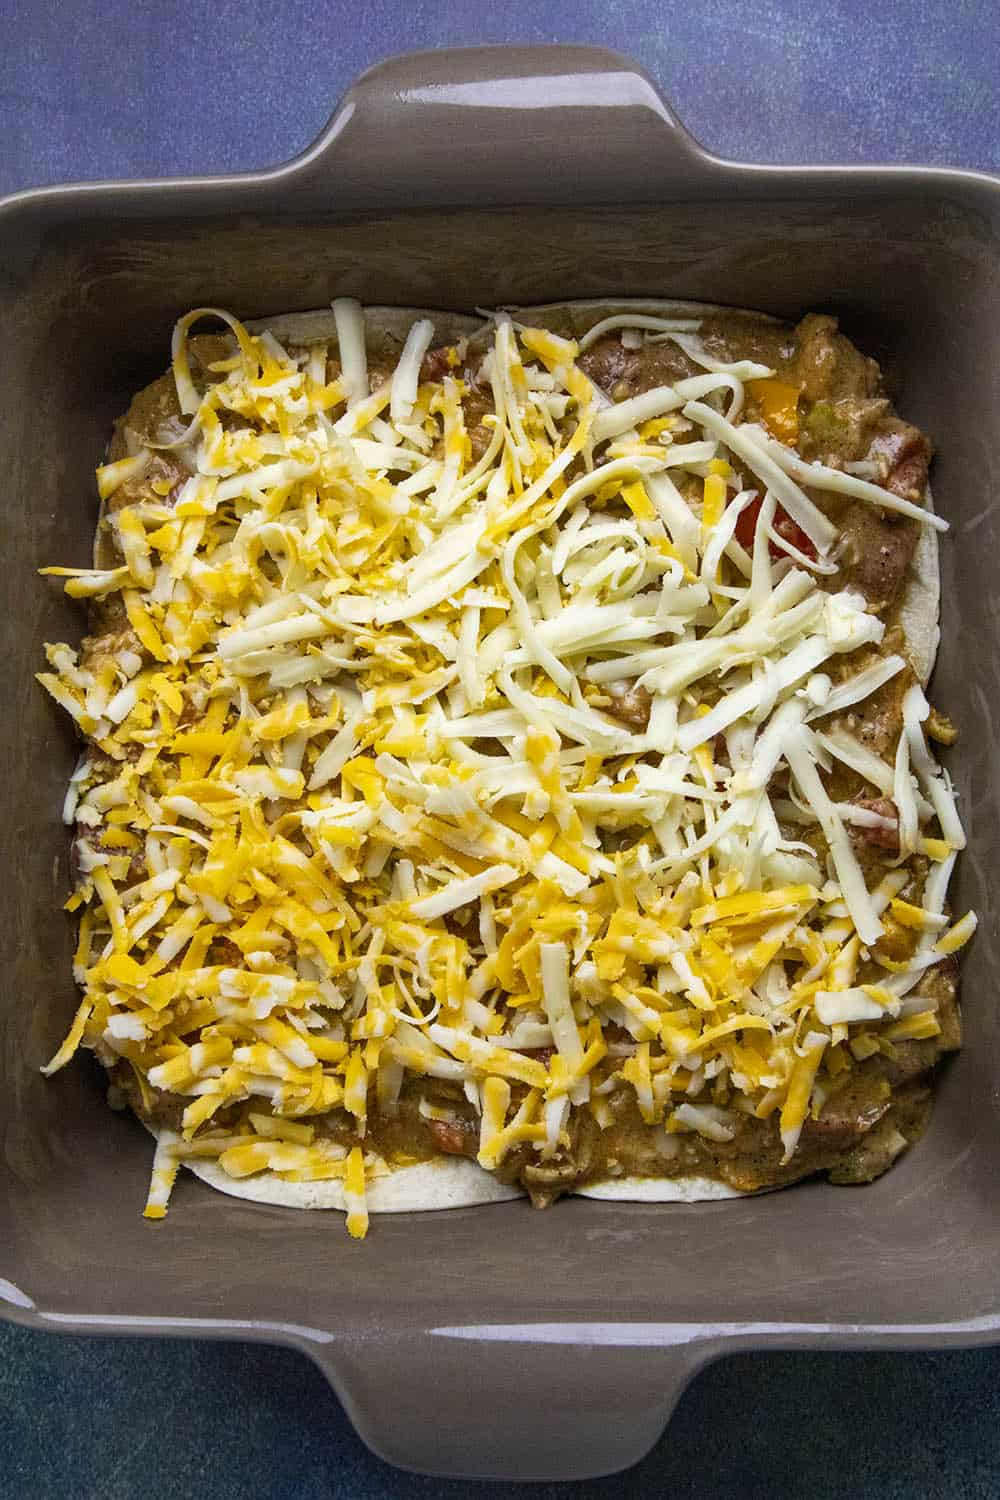 A layer of cheese on the King Ranch Casserole